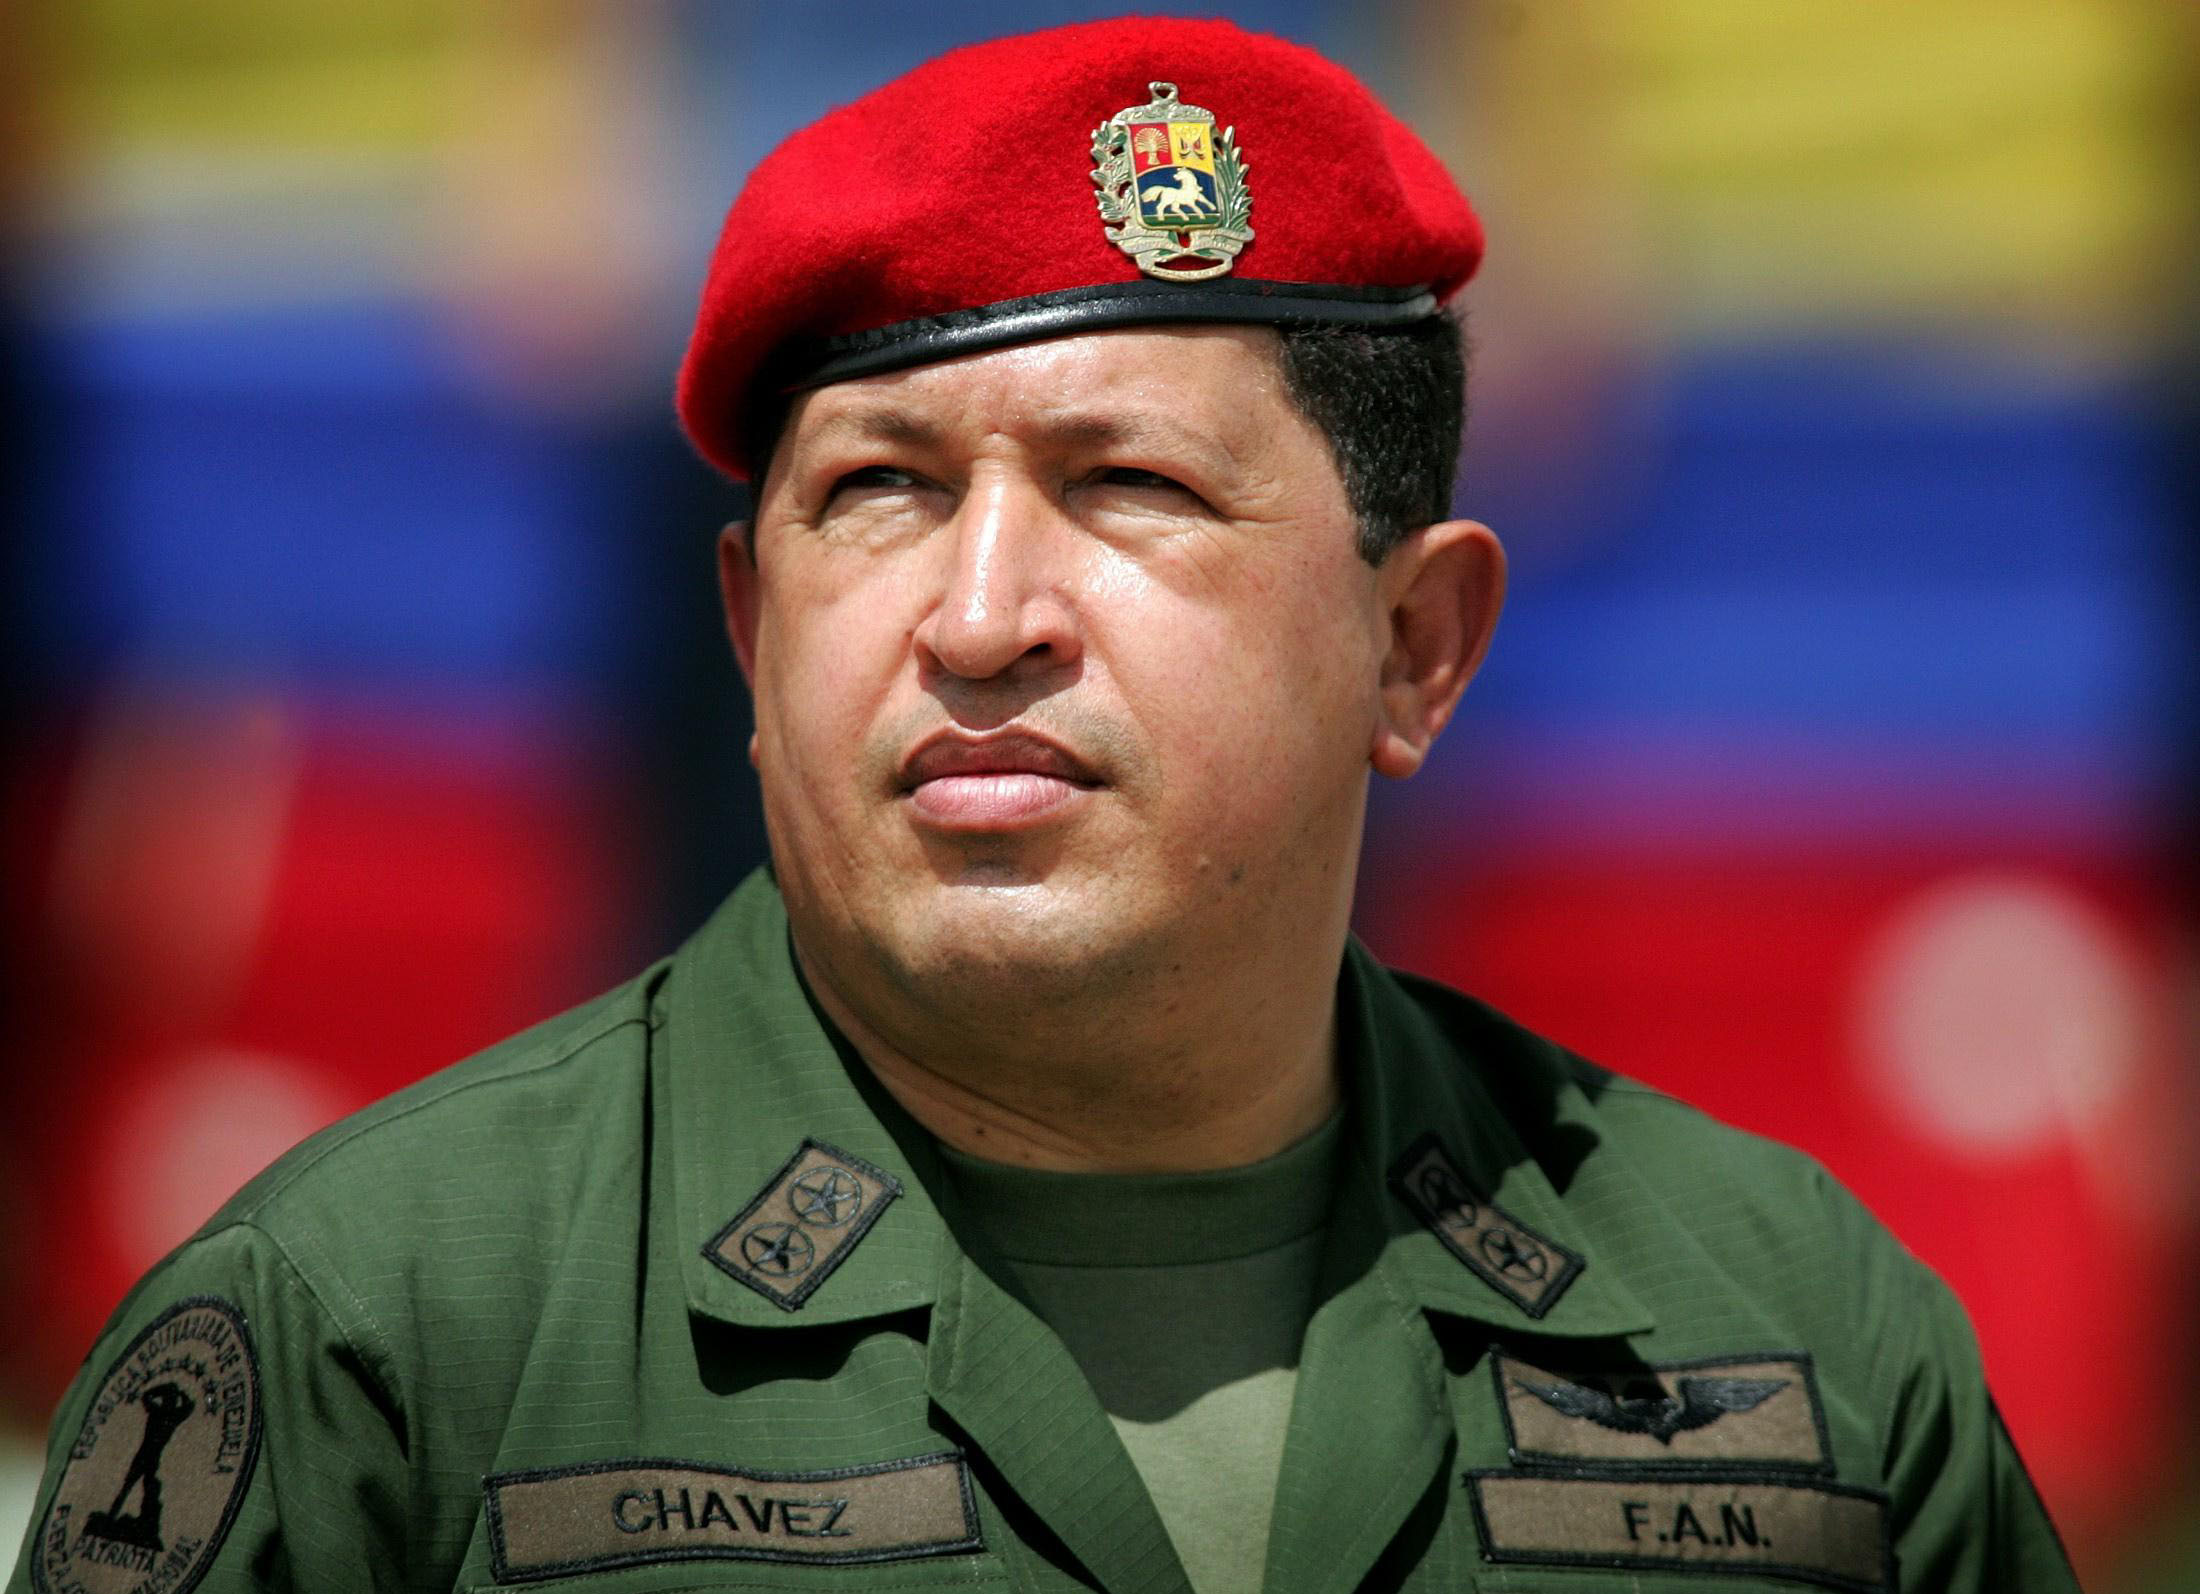 Hugo Chavez: The Paradox of Authoritarianism